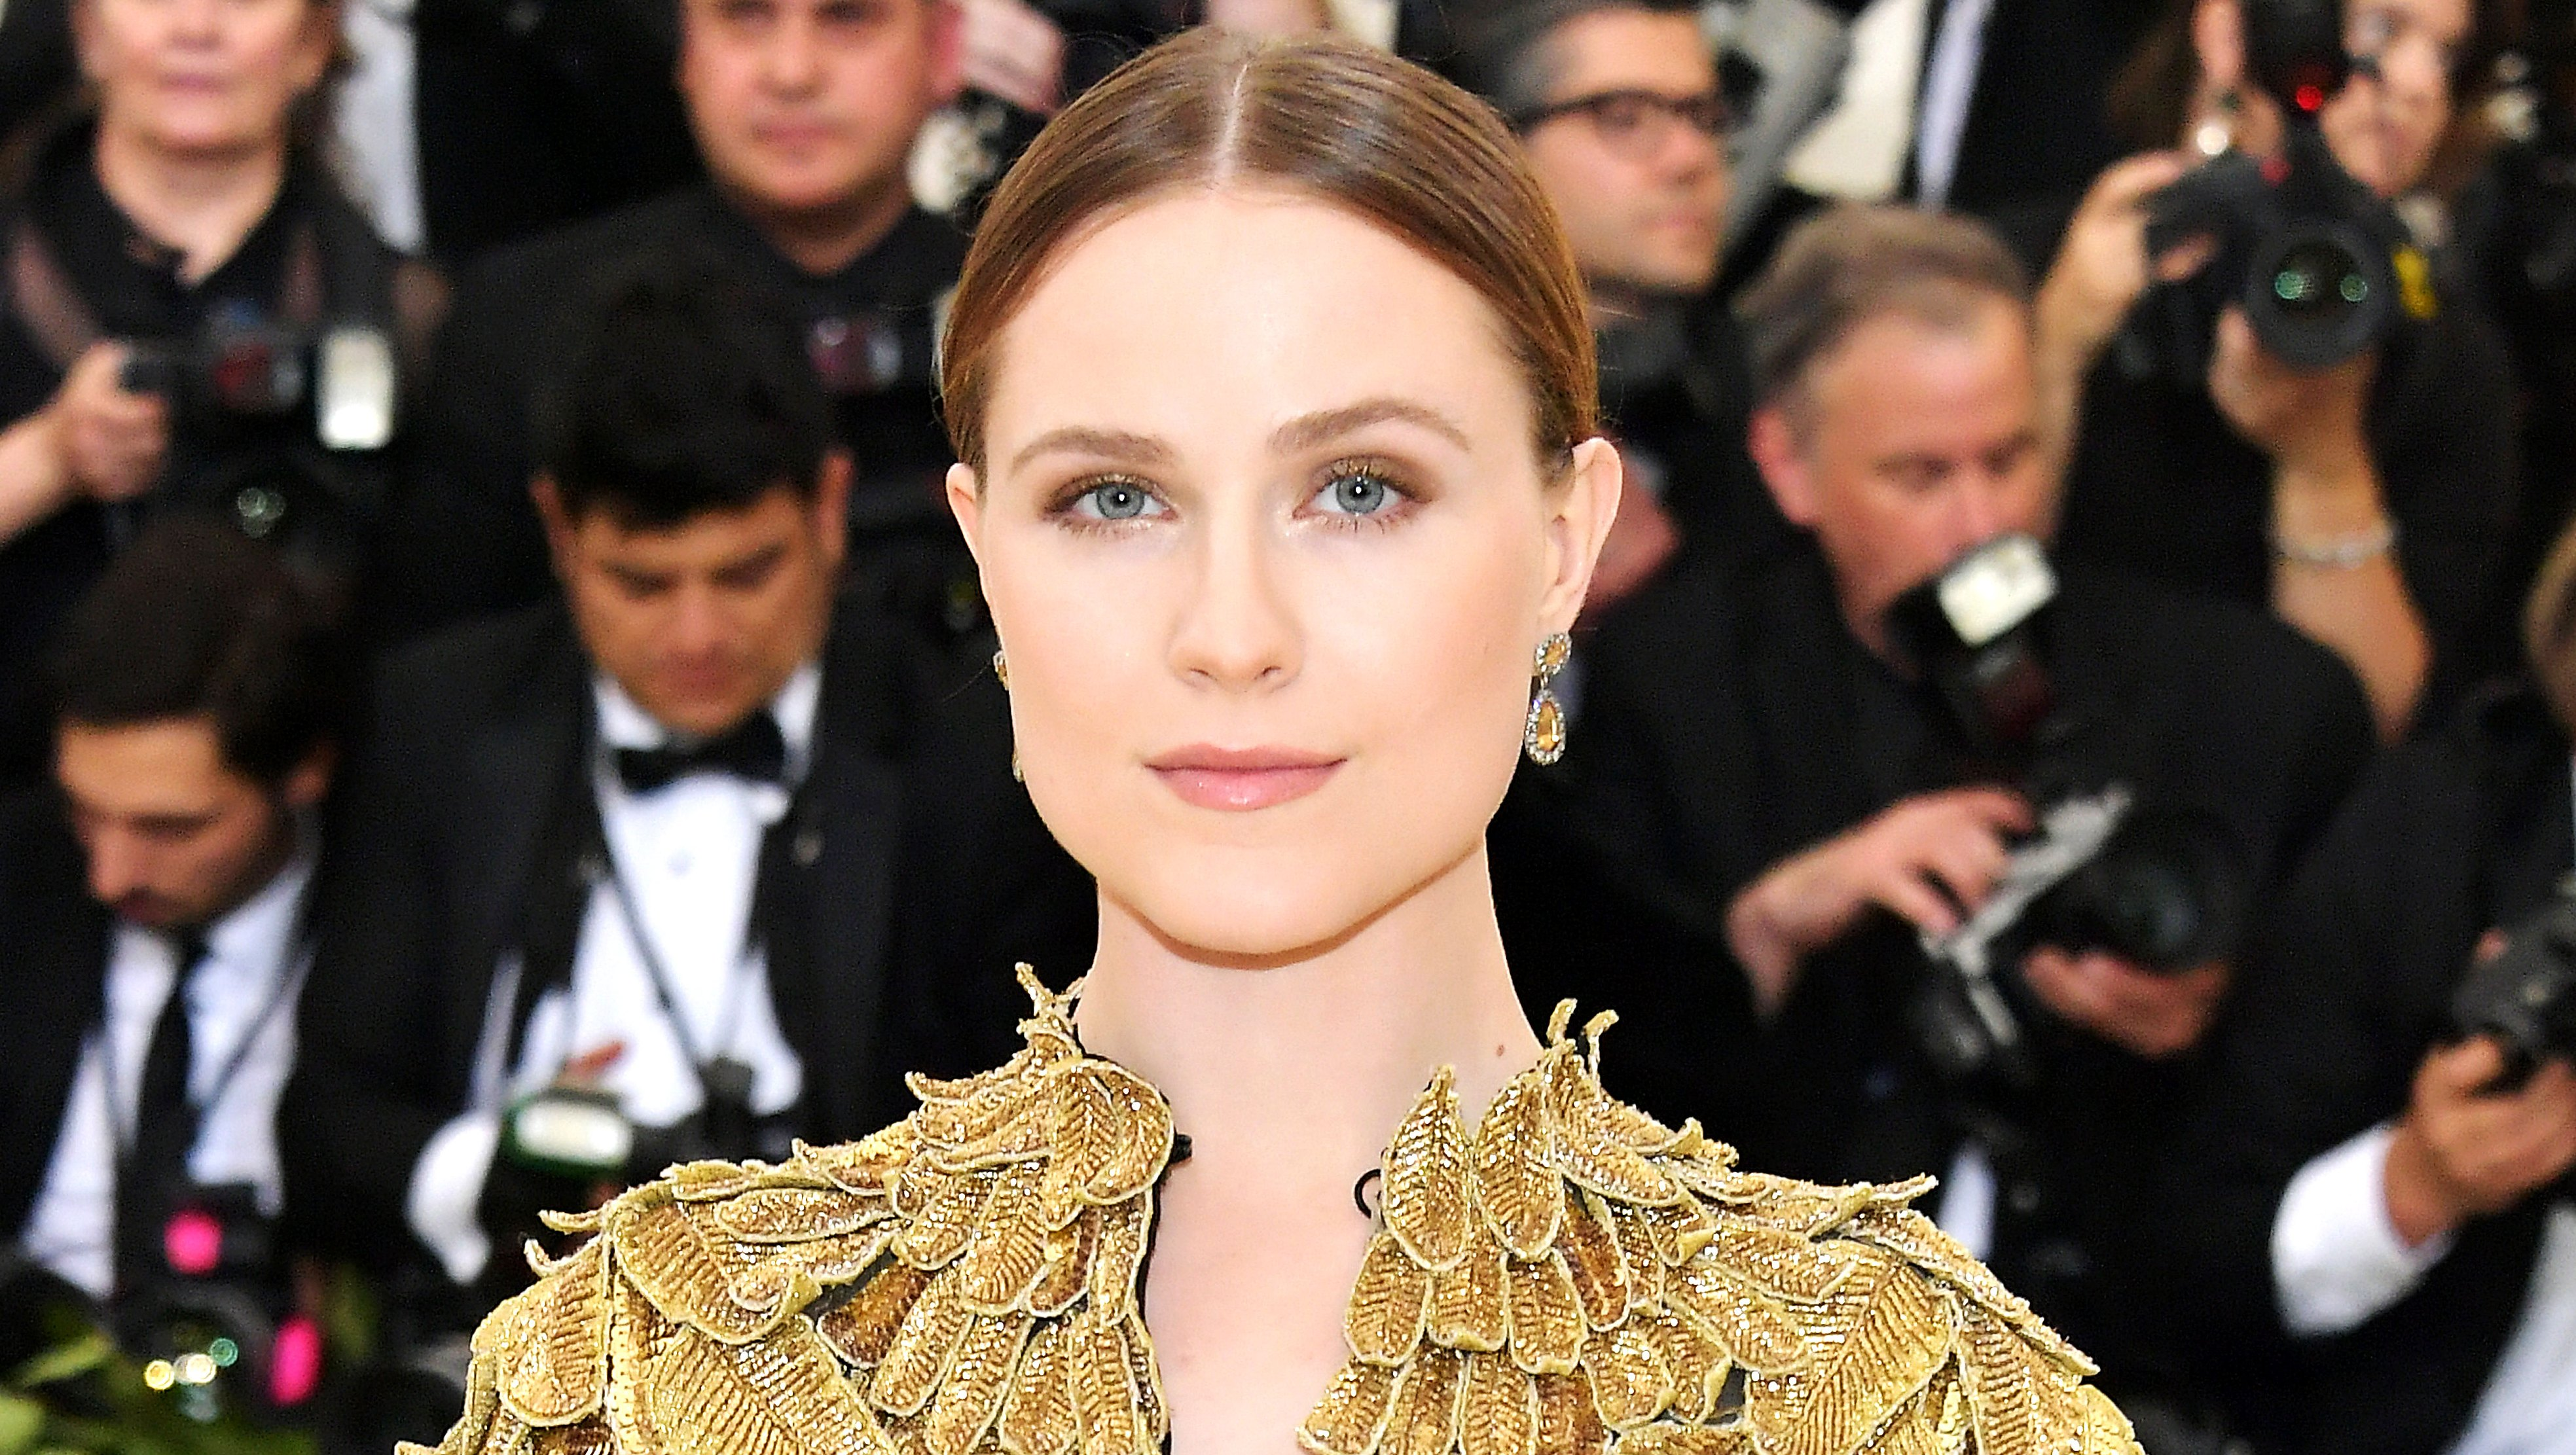 Evan Rachel Wood Opens Up About Abusive Relationship